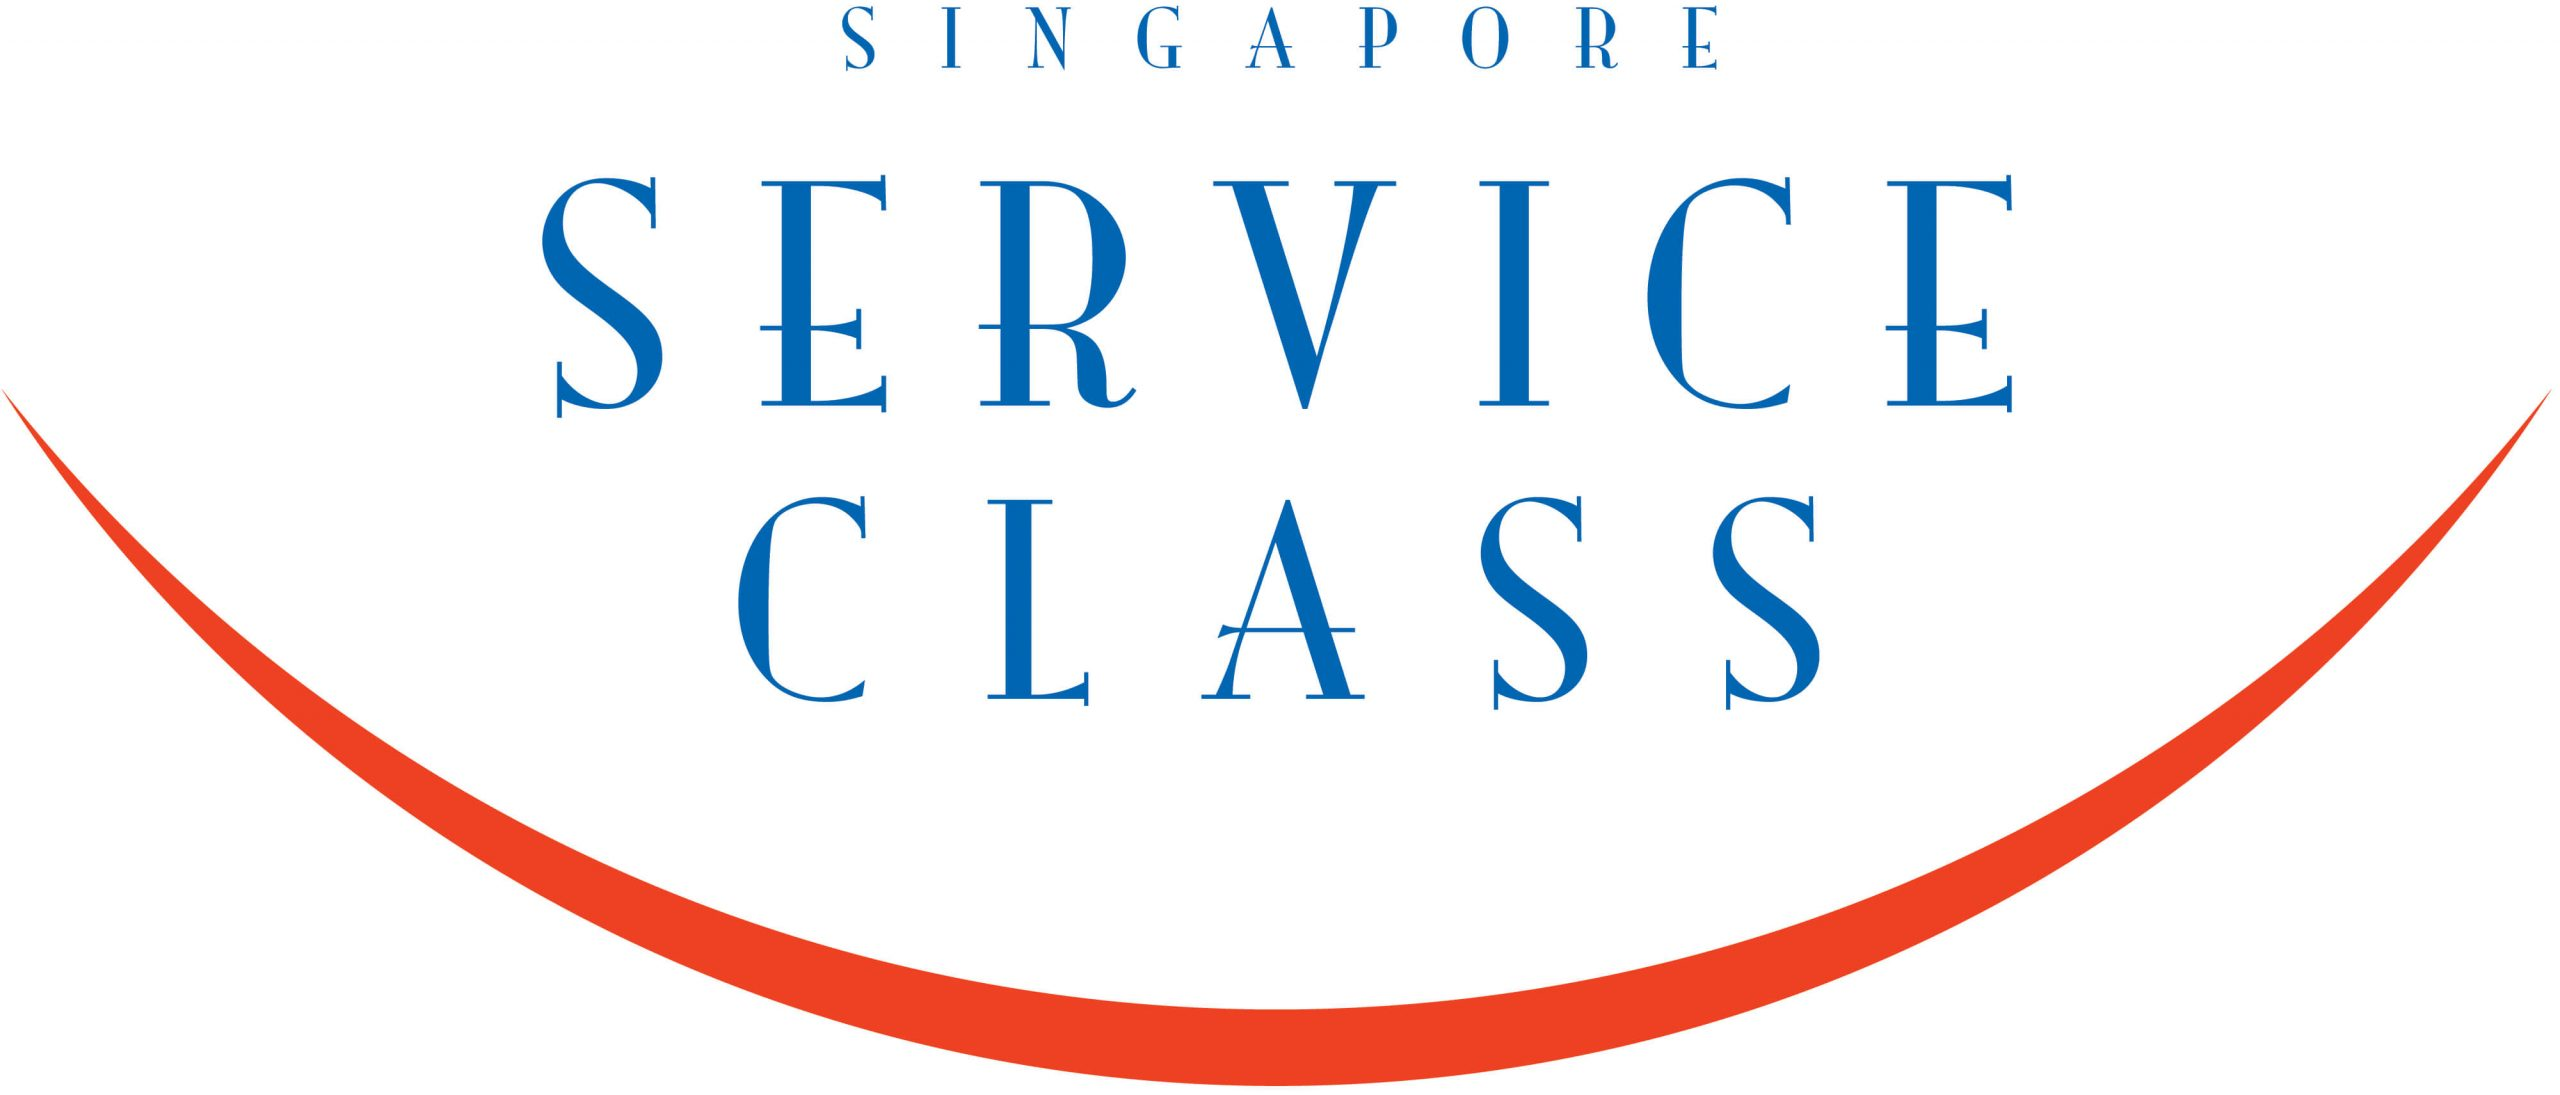 First Organisation in the Eldercare Sector to be Certified Service Class